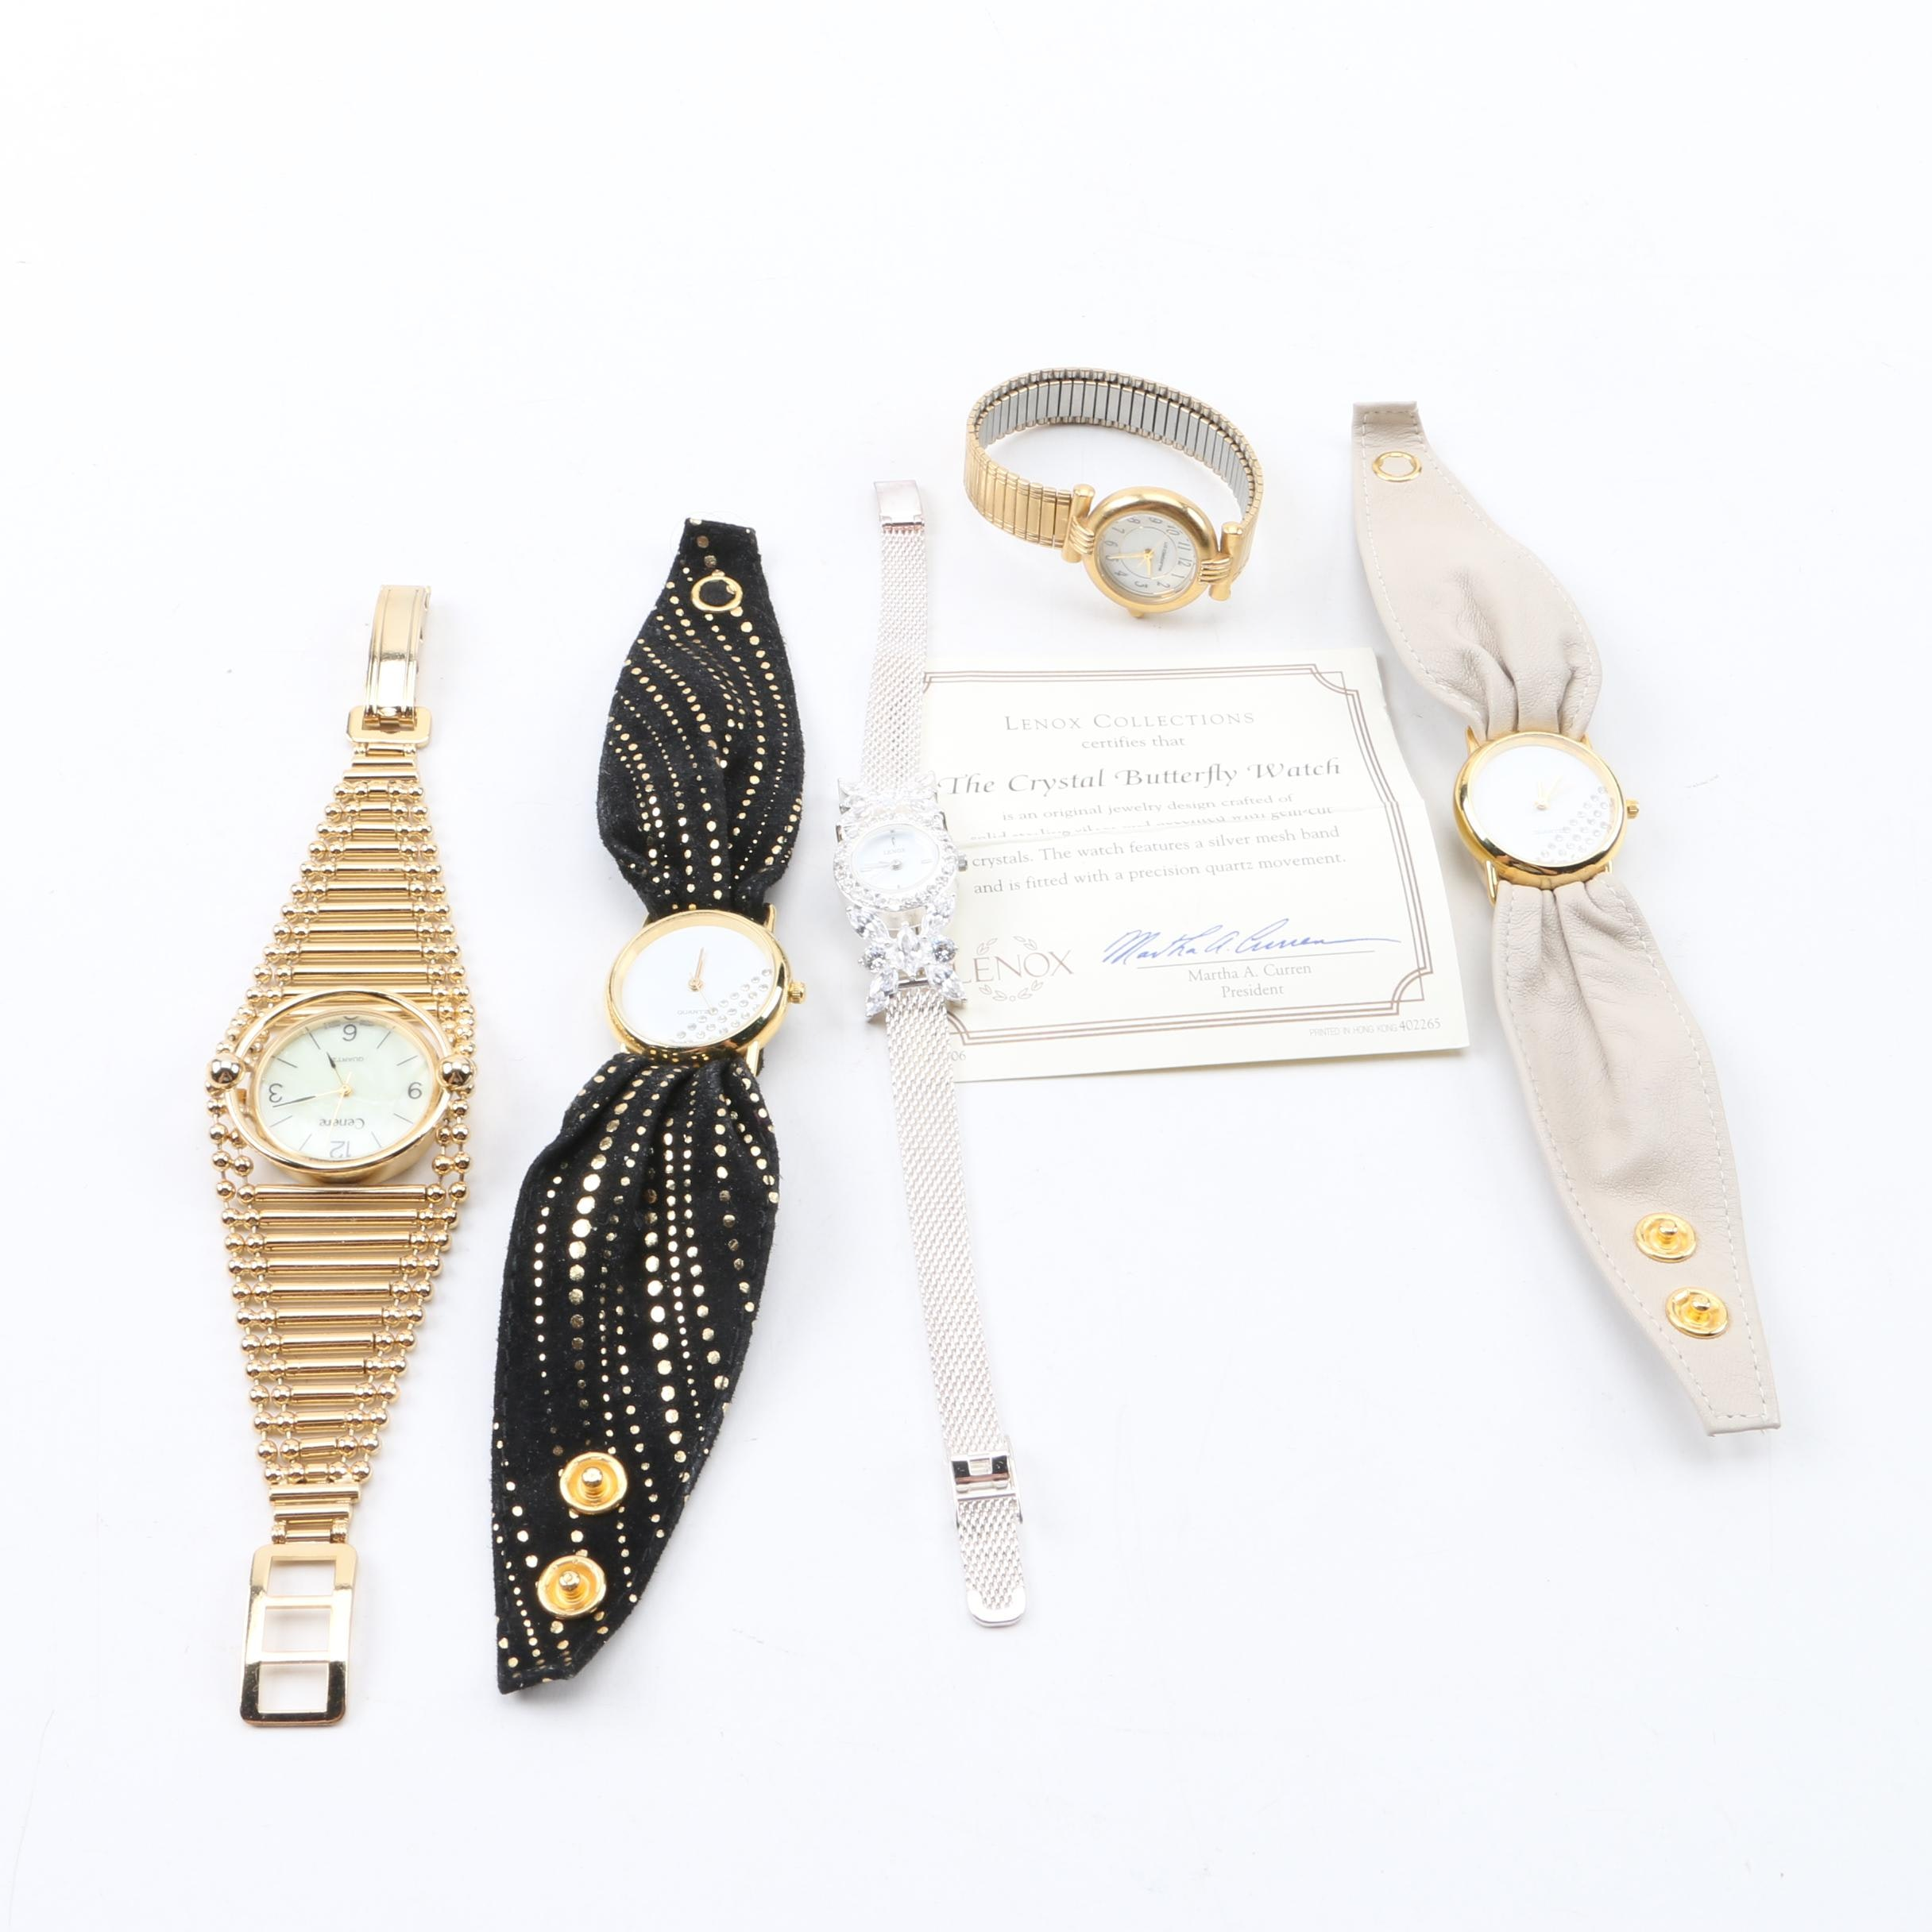 Wristwatches Featuring Cenere, Sterling Silver Lenox and Liz Claiborne